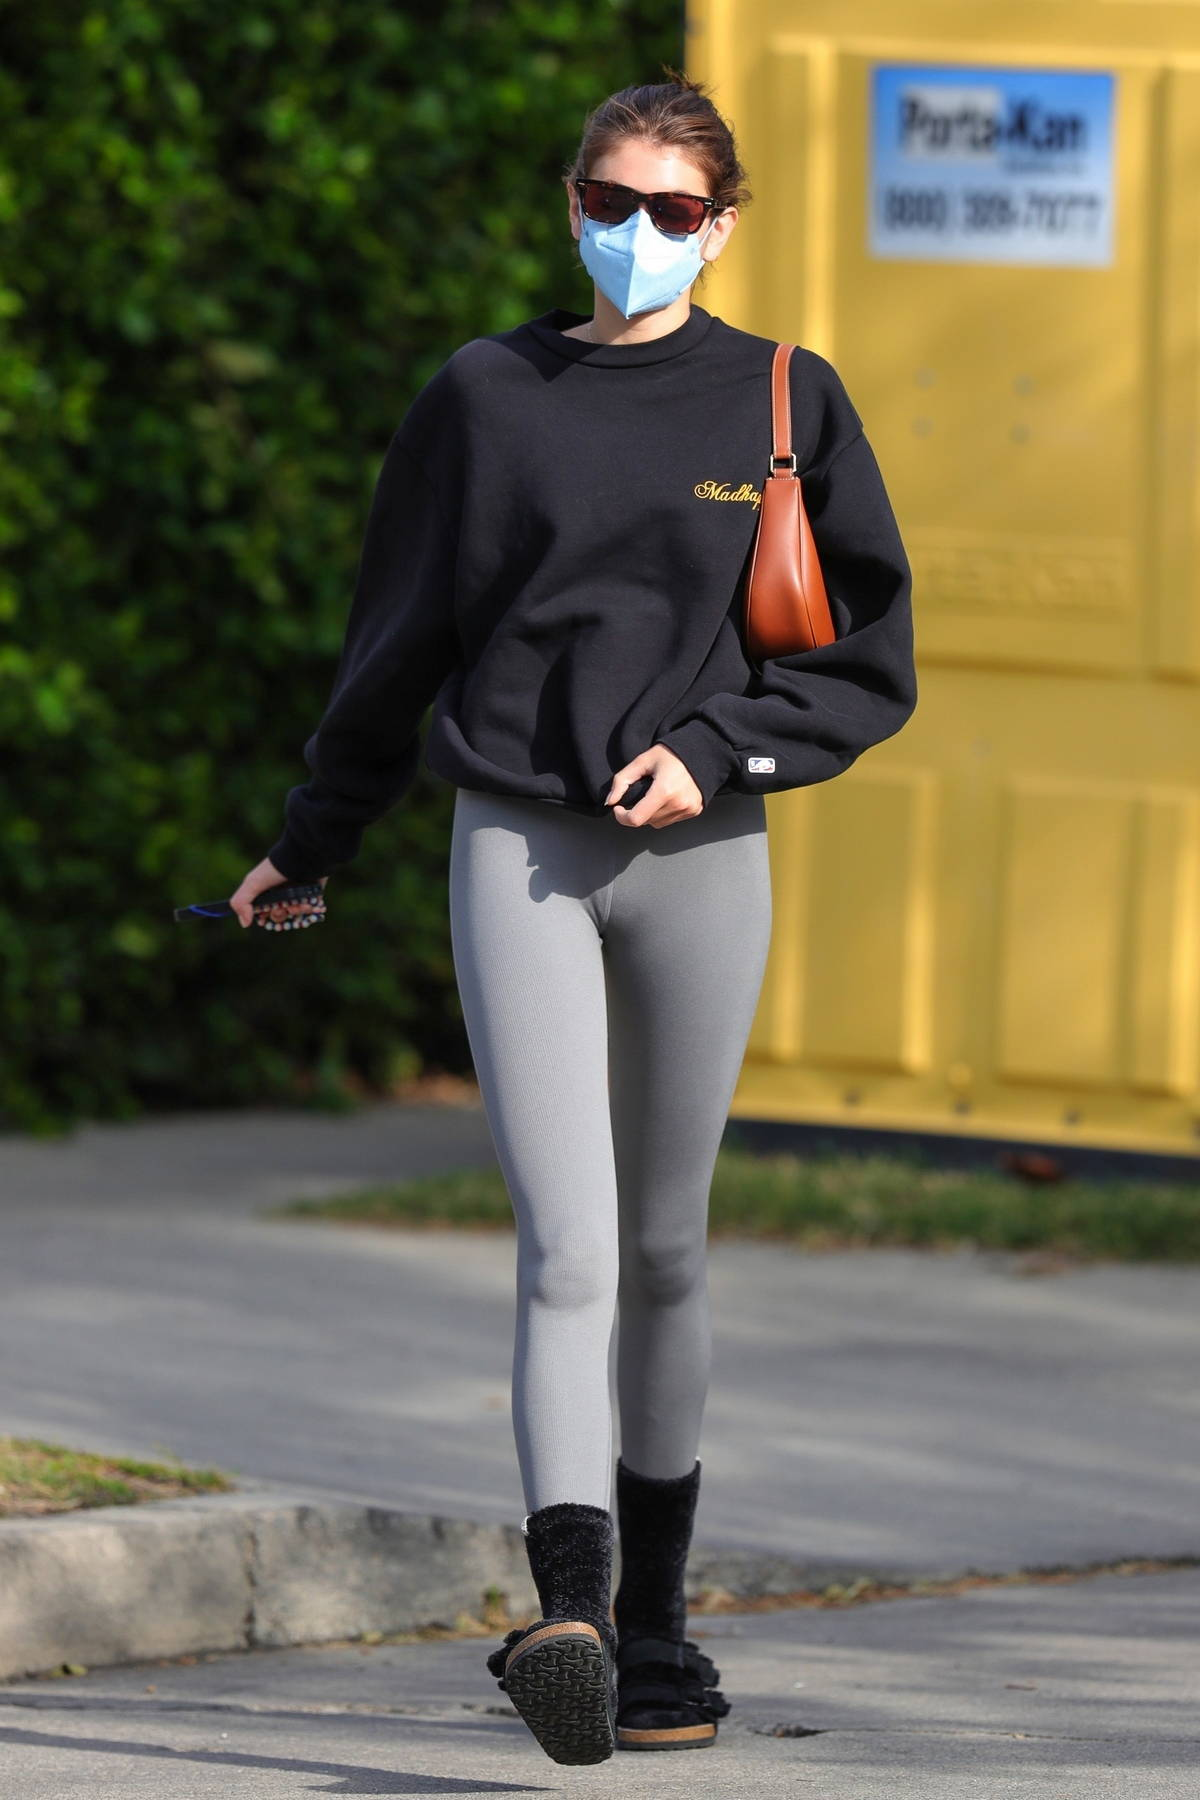 Kaia Gerber wears a black sweatshirt and grey leggings as she leaves after her Pilates class in West Hollywood, California